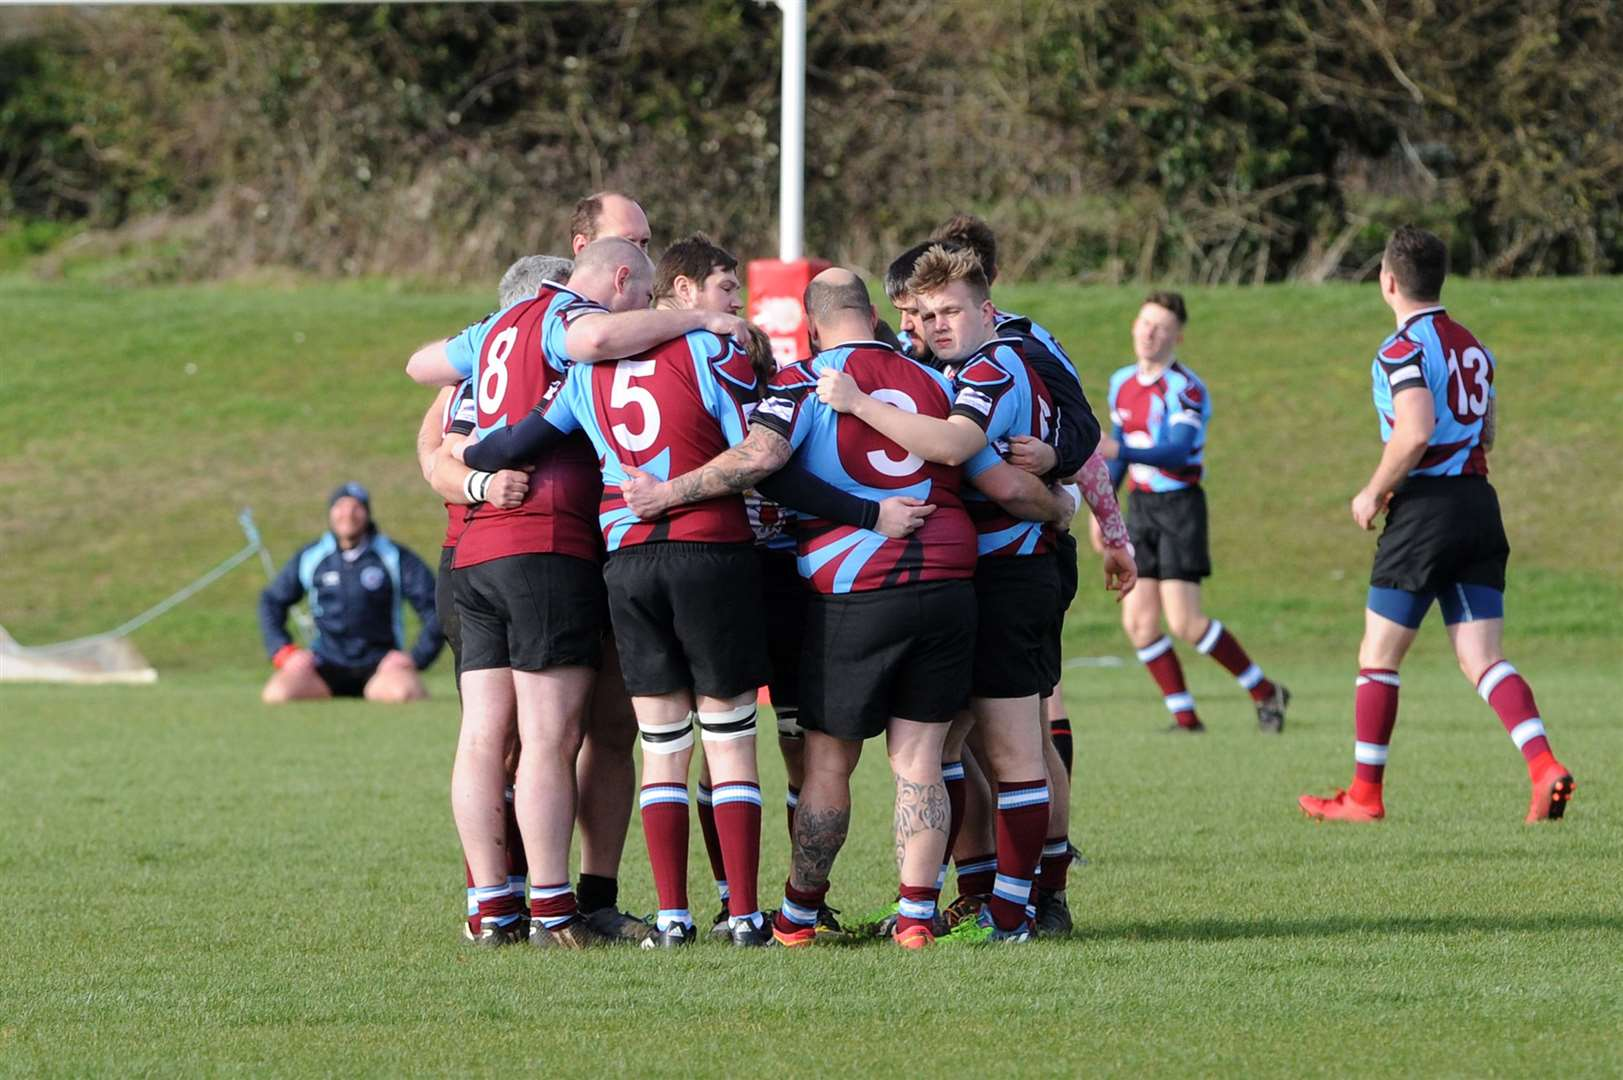 RUGBY - Haverhill v Sawston..Pictured: ...PICTURE: Mecha Morton. (33143077)